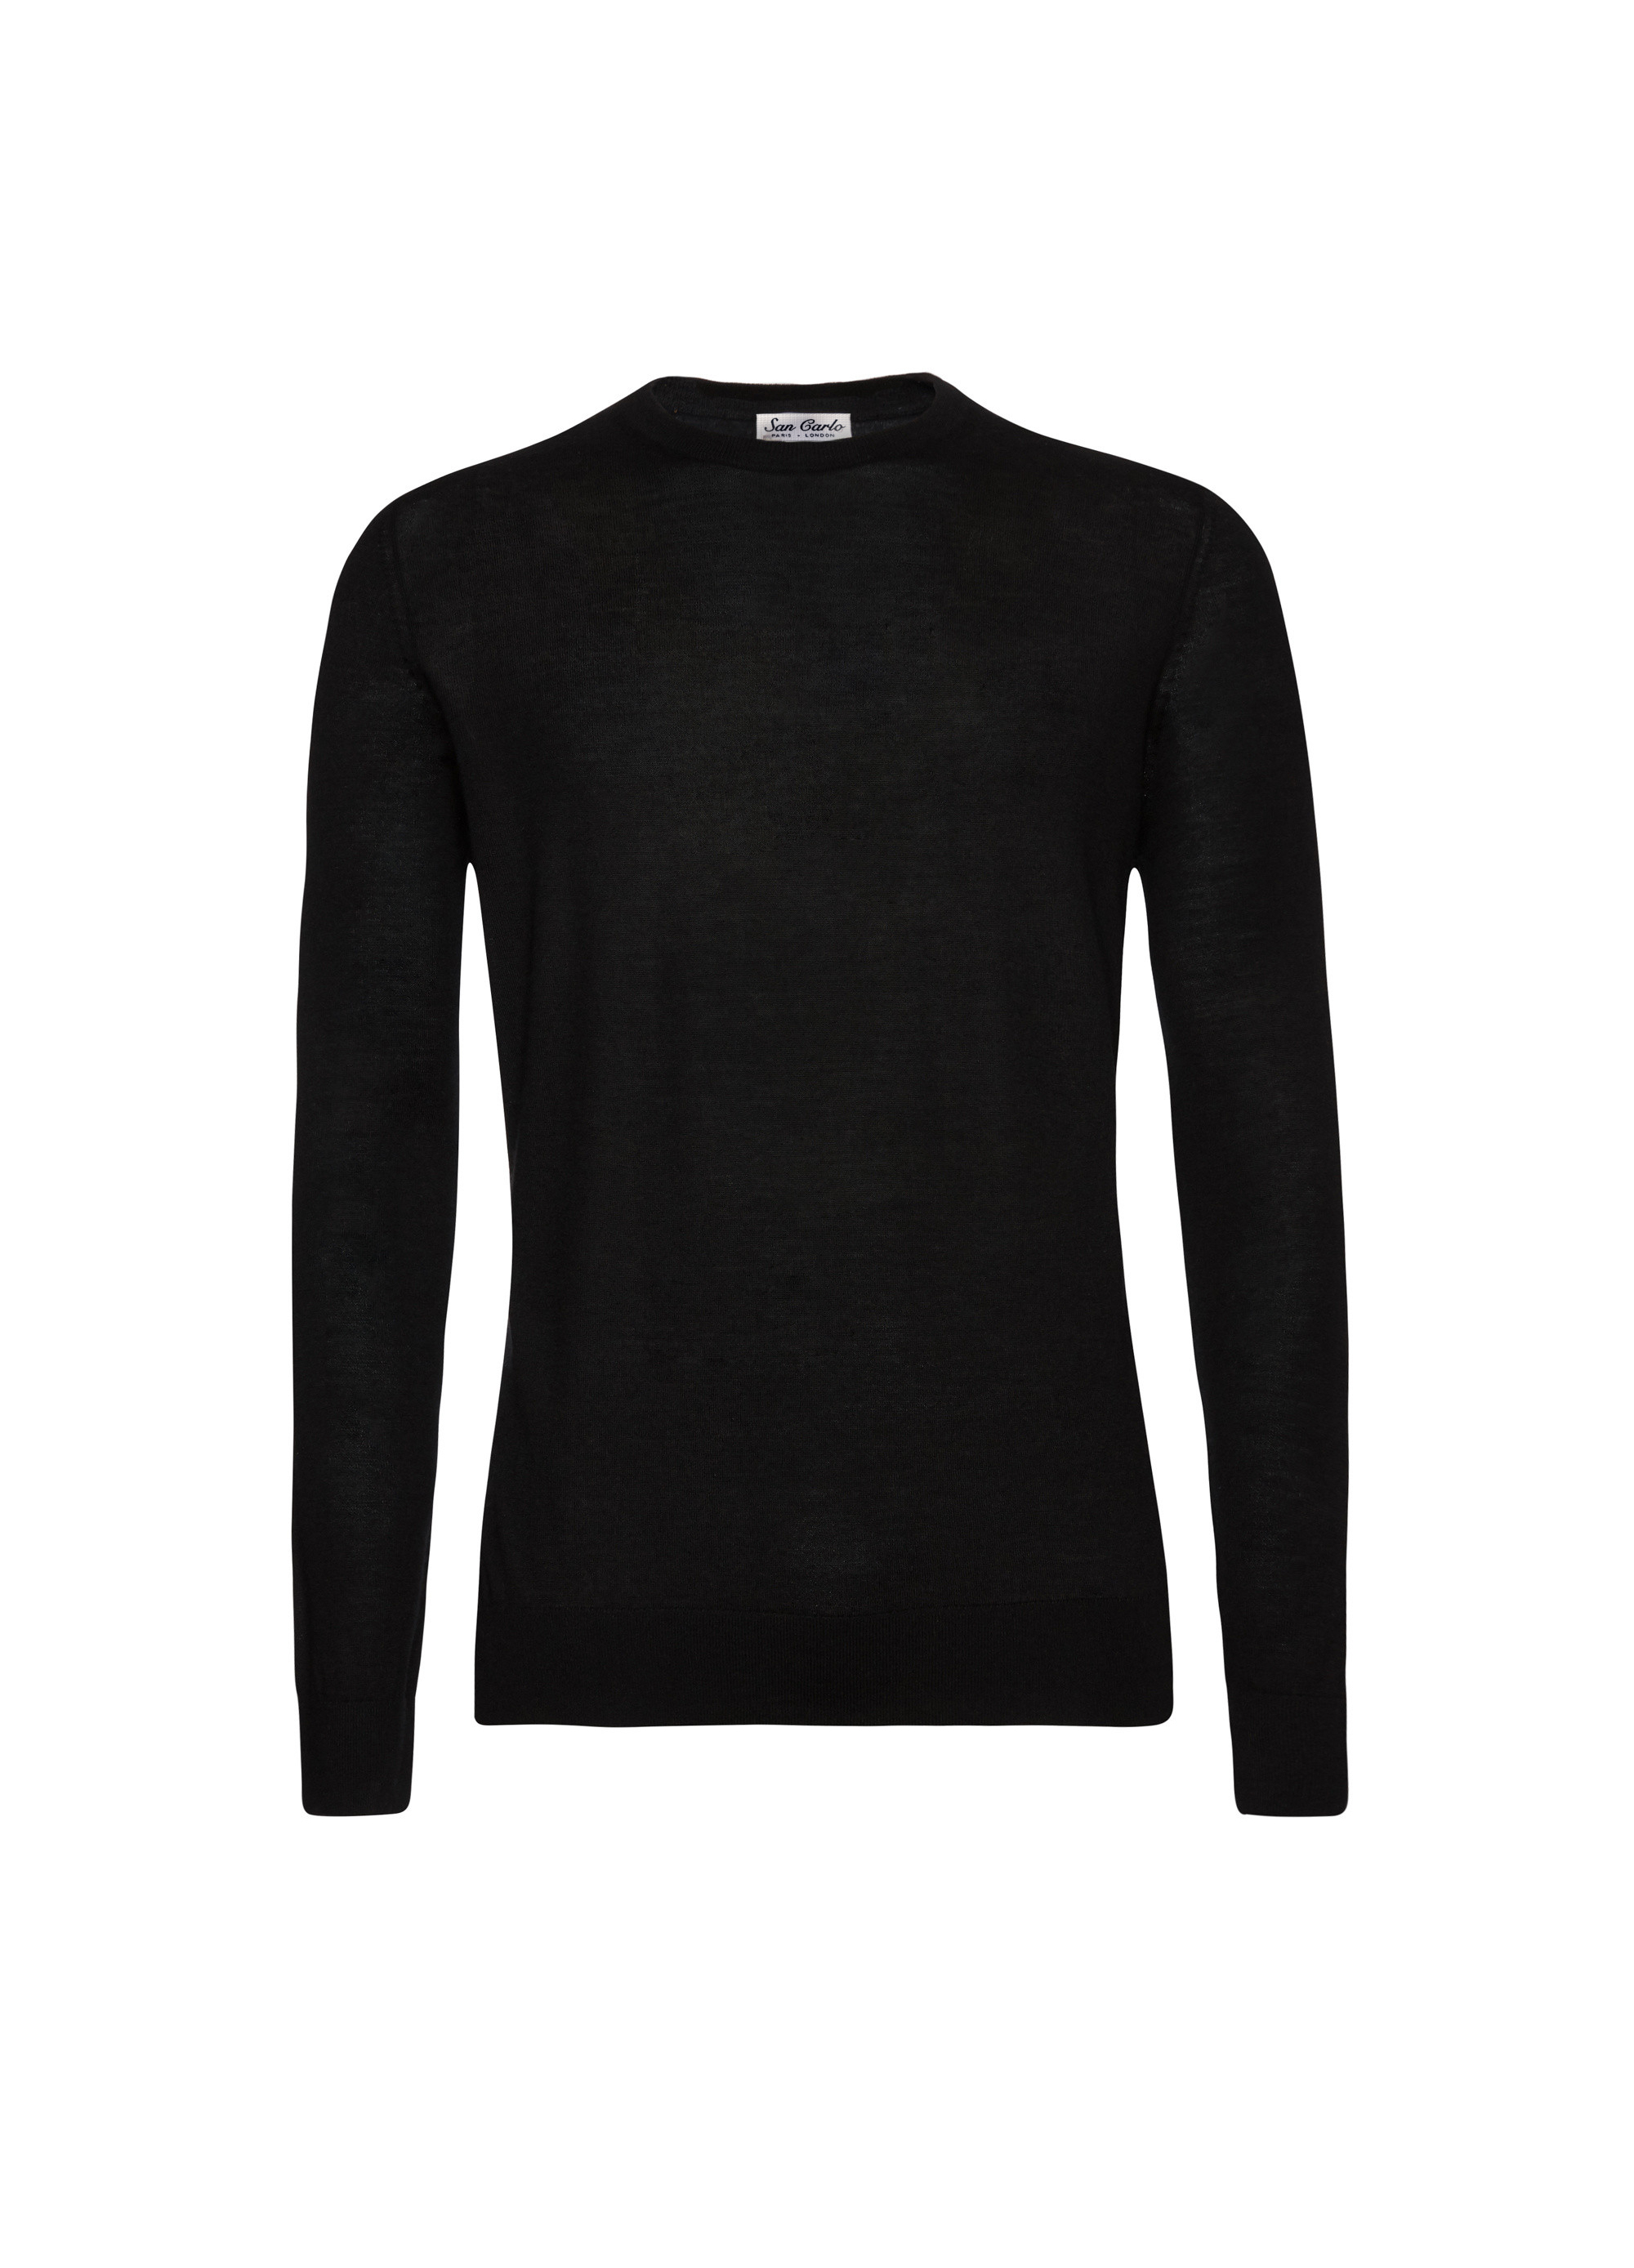 Round Neck Silk & Cashmere Black 02